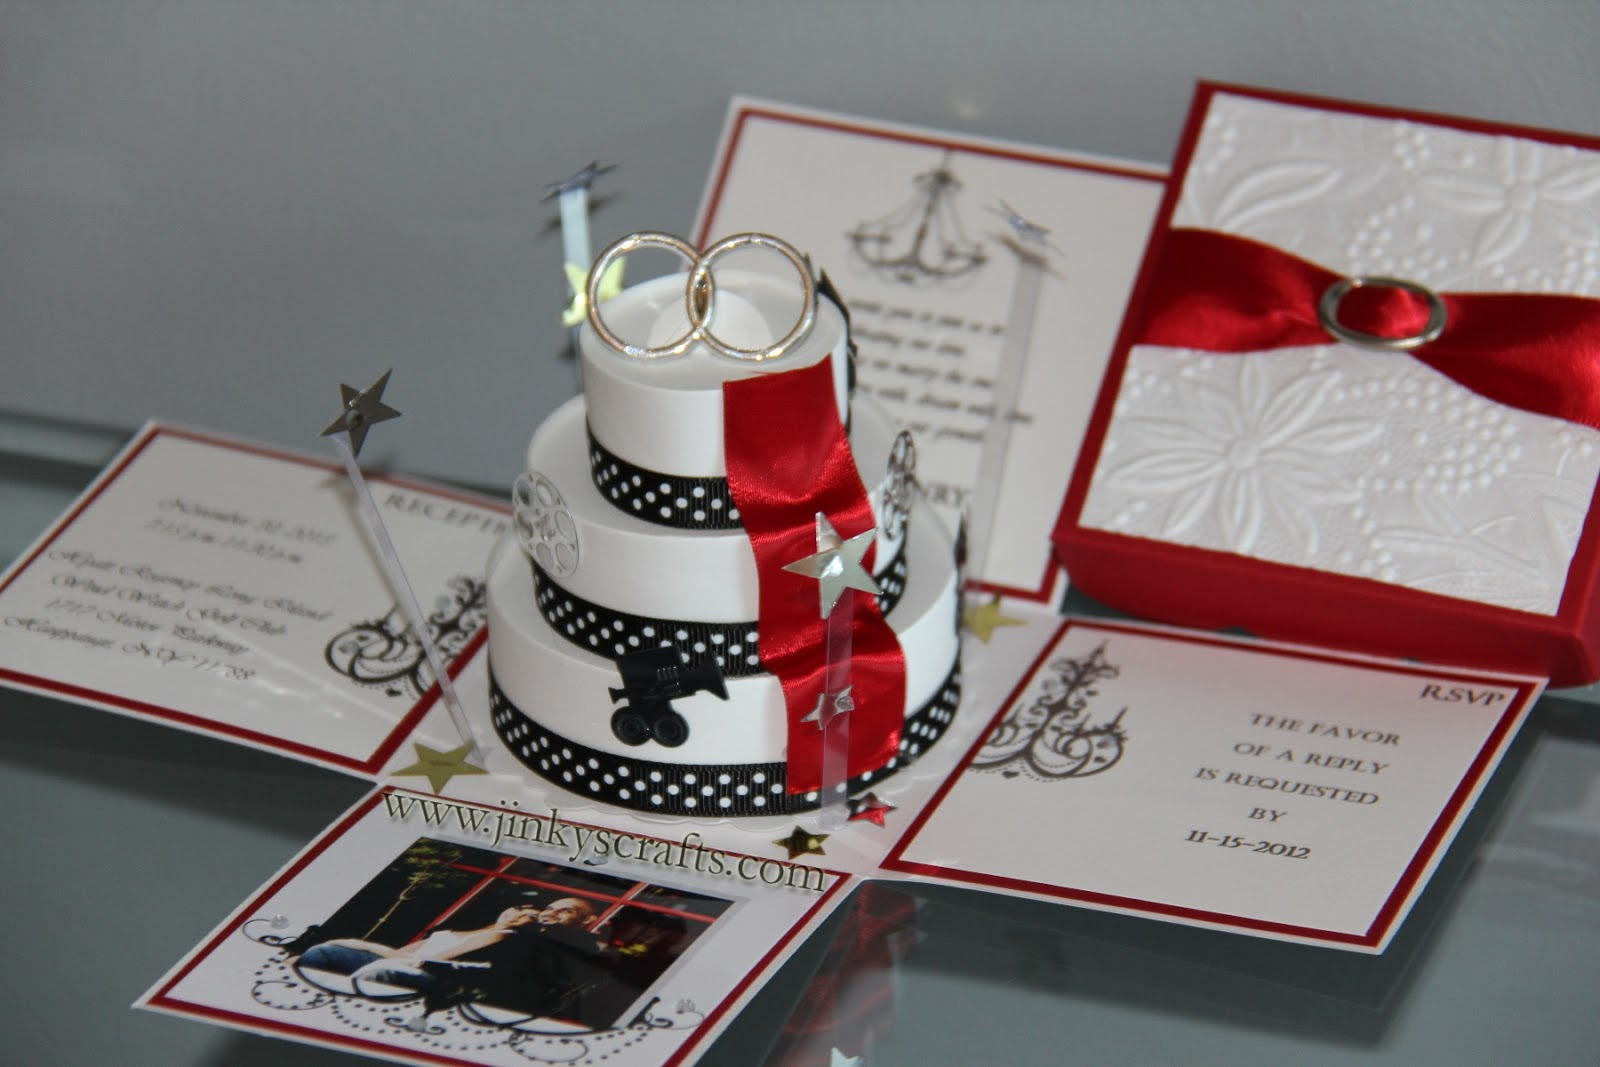 Wedding Invitation In A Box: Jinky's Crafts & Designs: March 2013